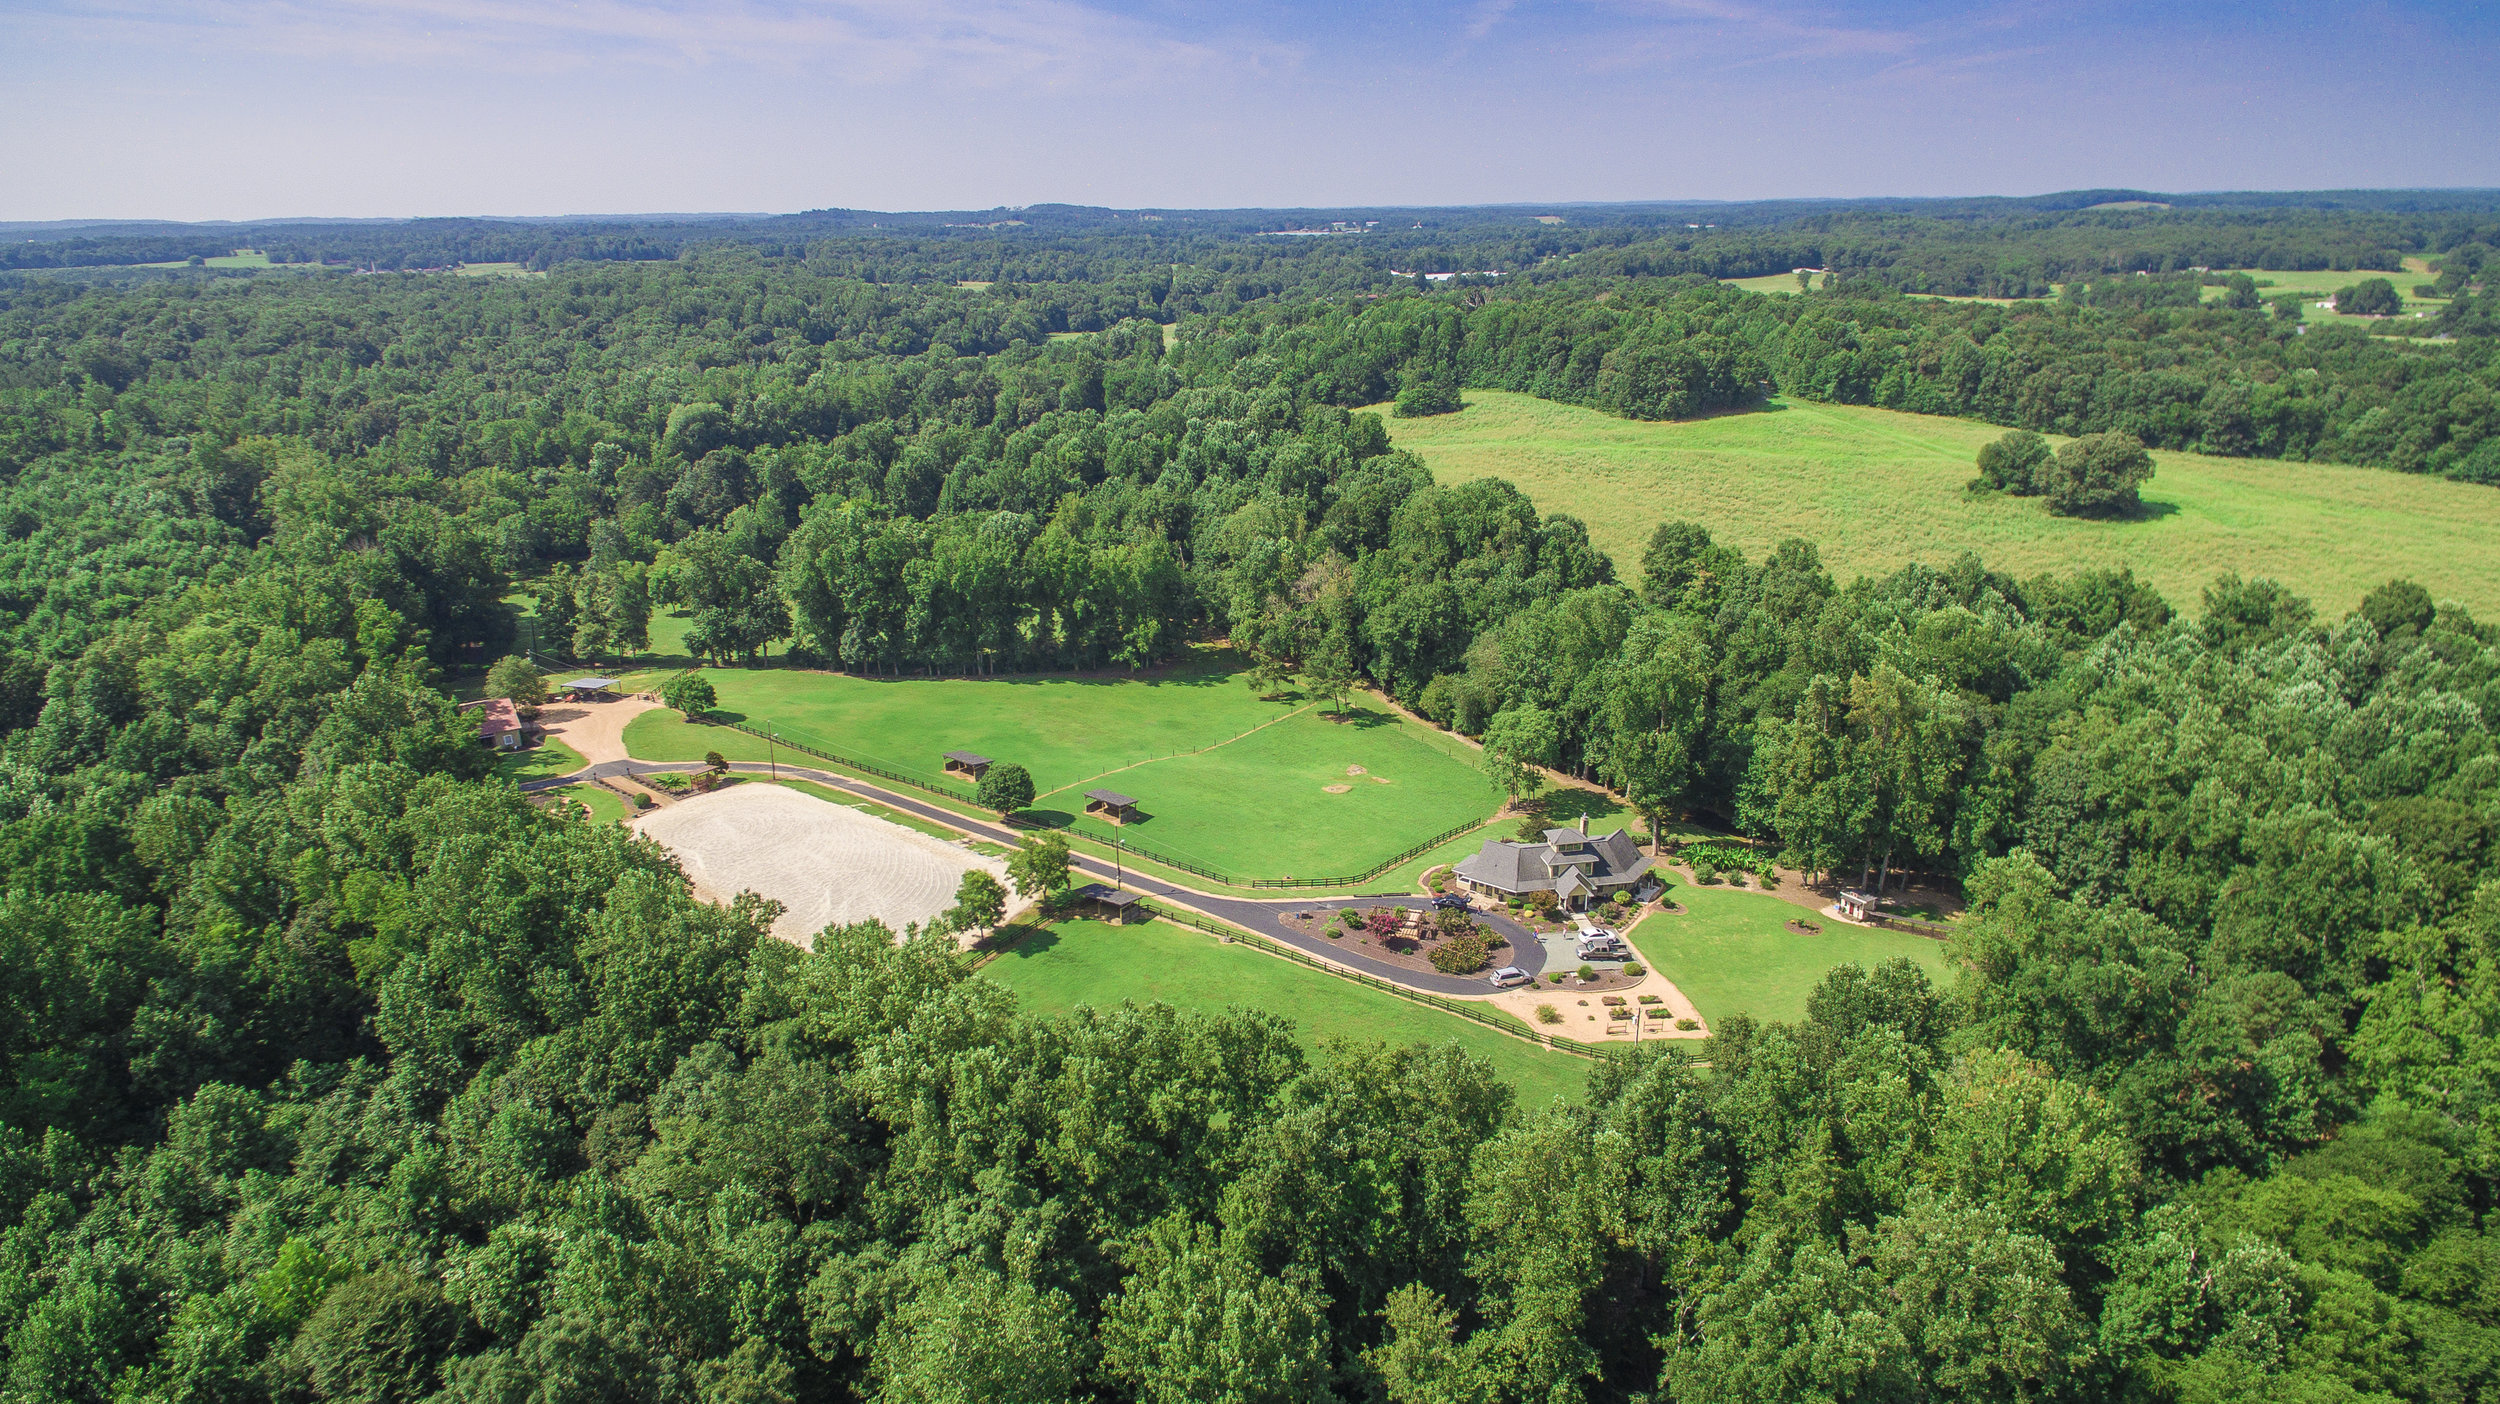 real-estate-photography-drone-photographer-drone-greensboro-nc-triad-210.jpg